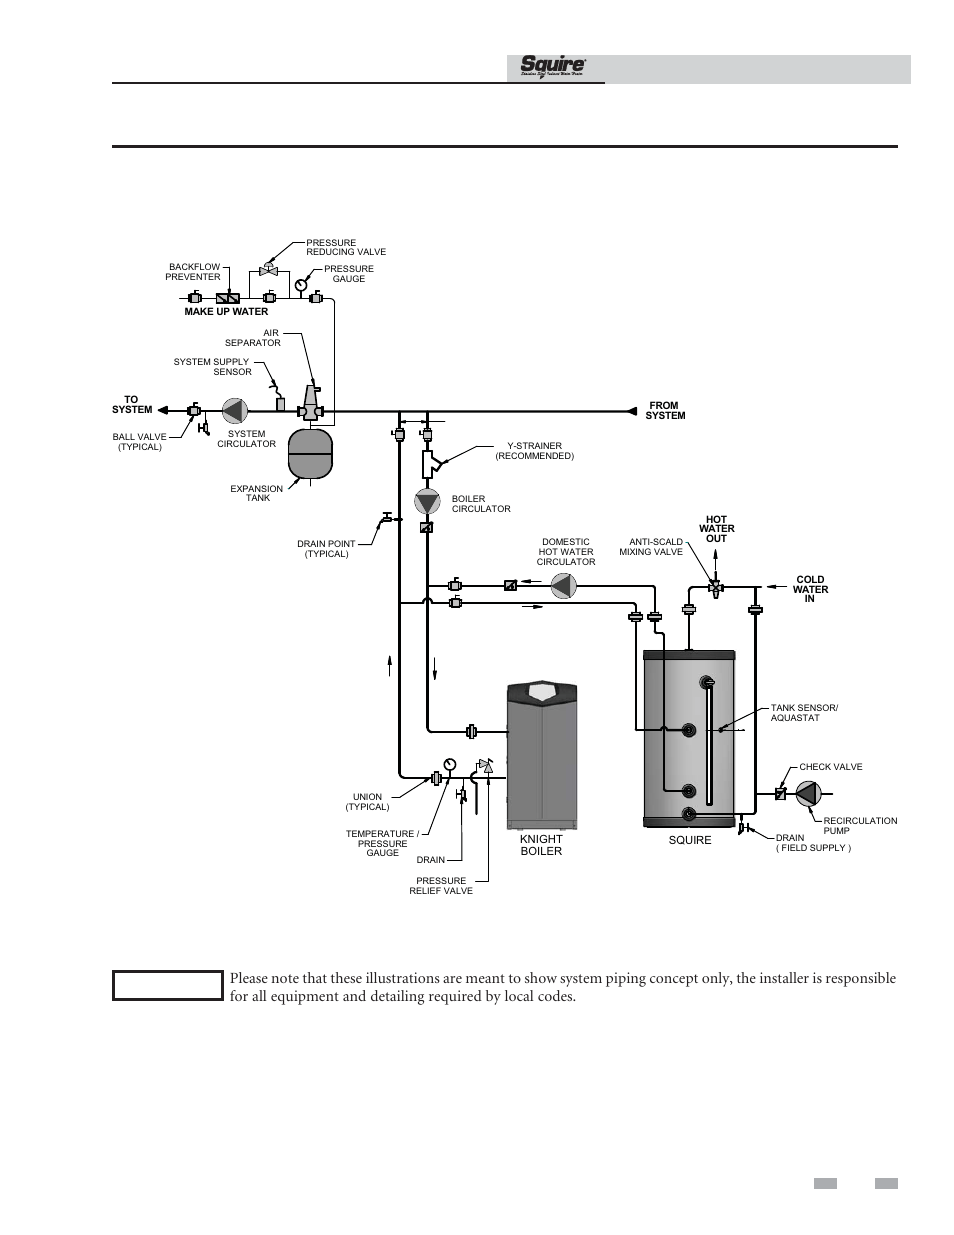 medium resolution of boiler side piping installation operation manual lochinvar squire sit119 user manual page 9 24